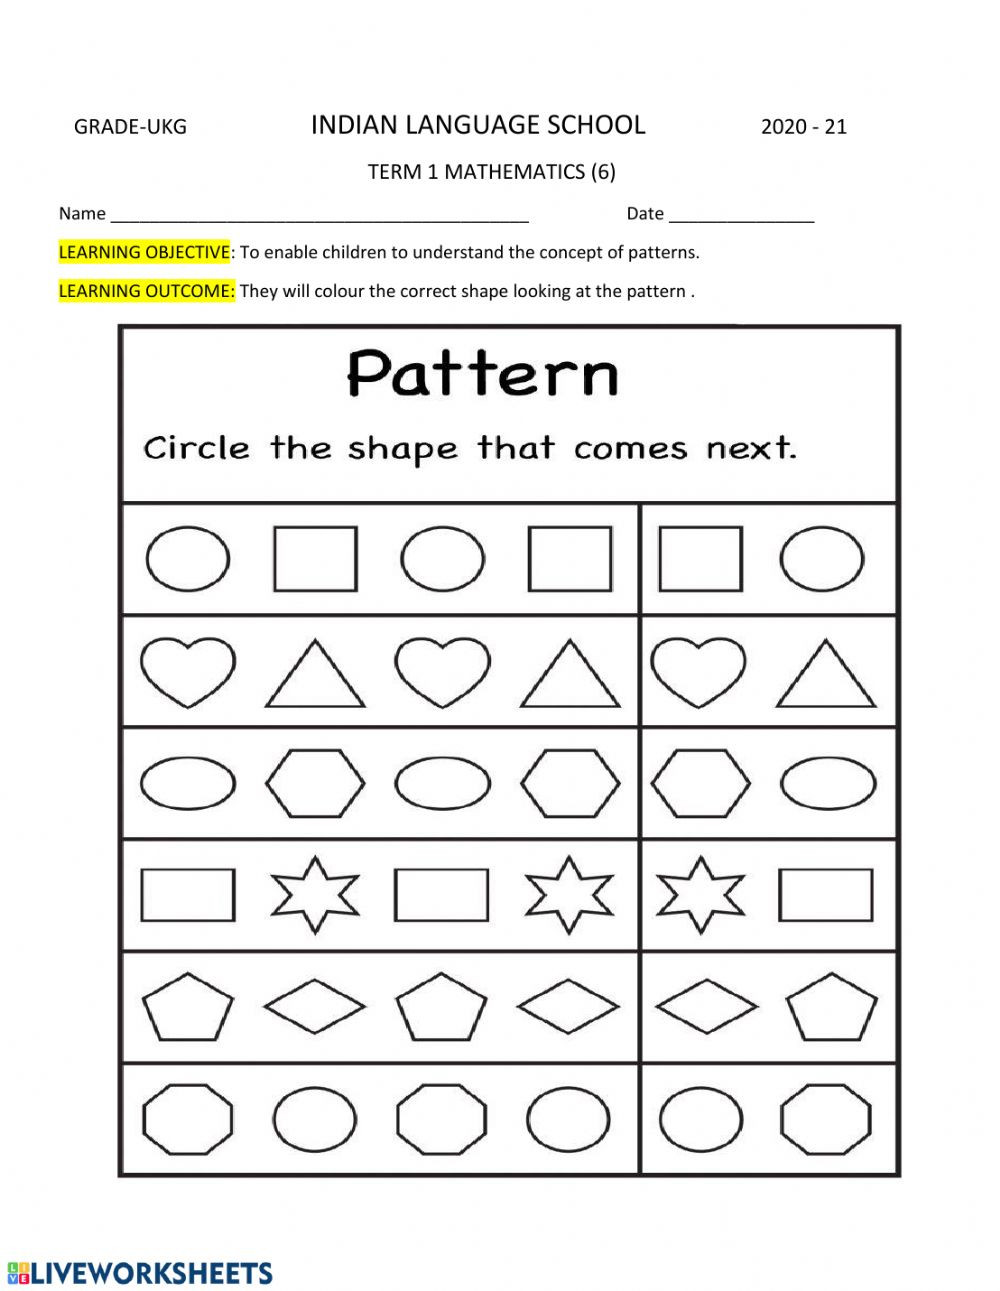 Number Patterns Worksheets Grade 6 Shapes and Patterns Interactive Worksheet